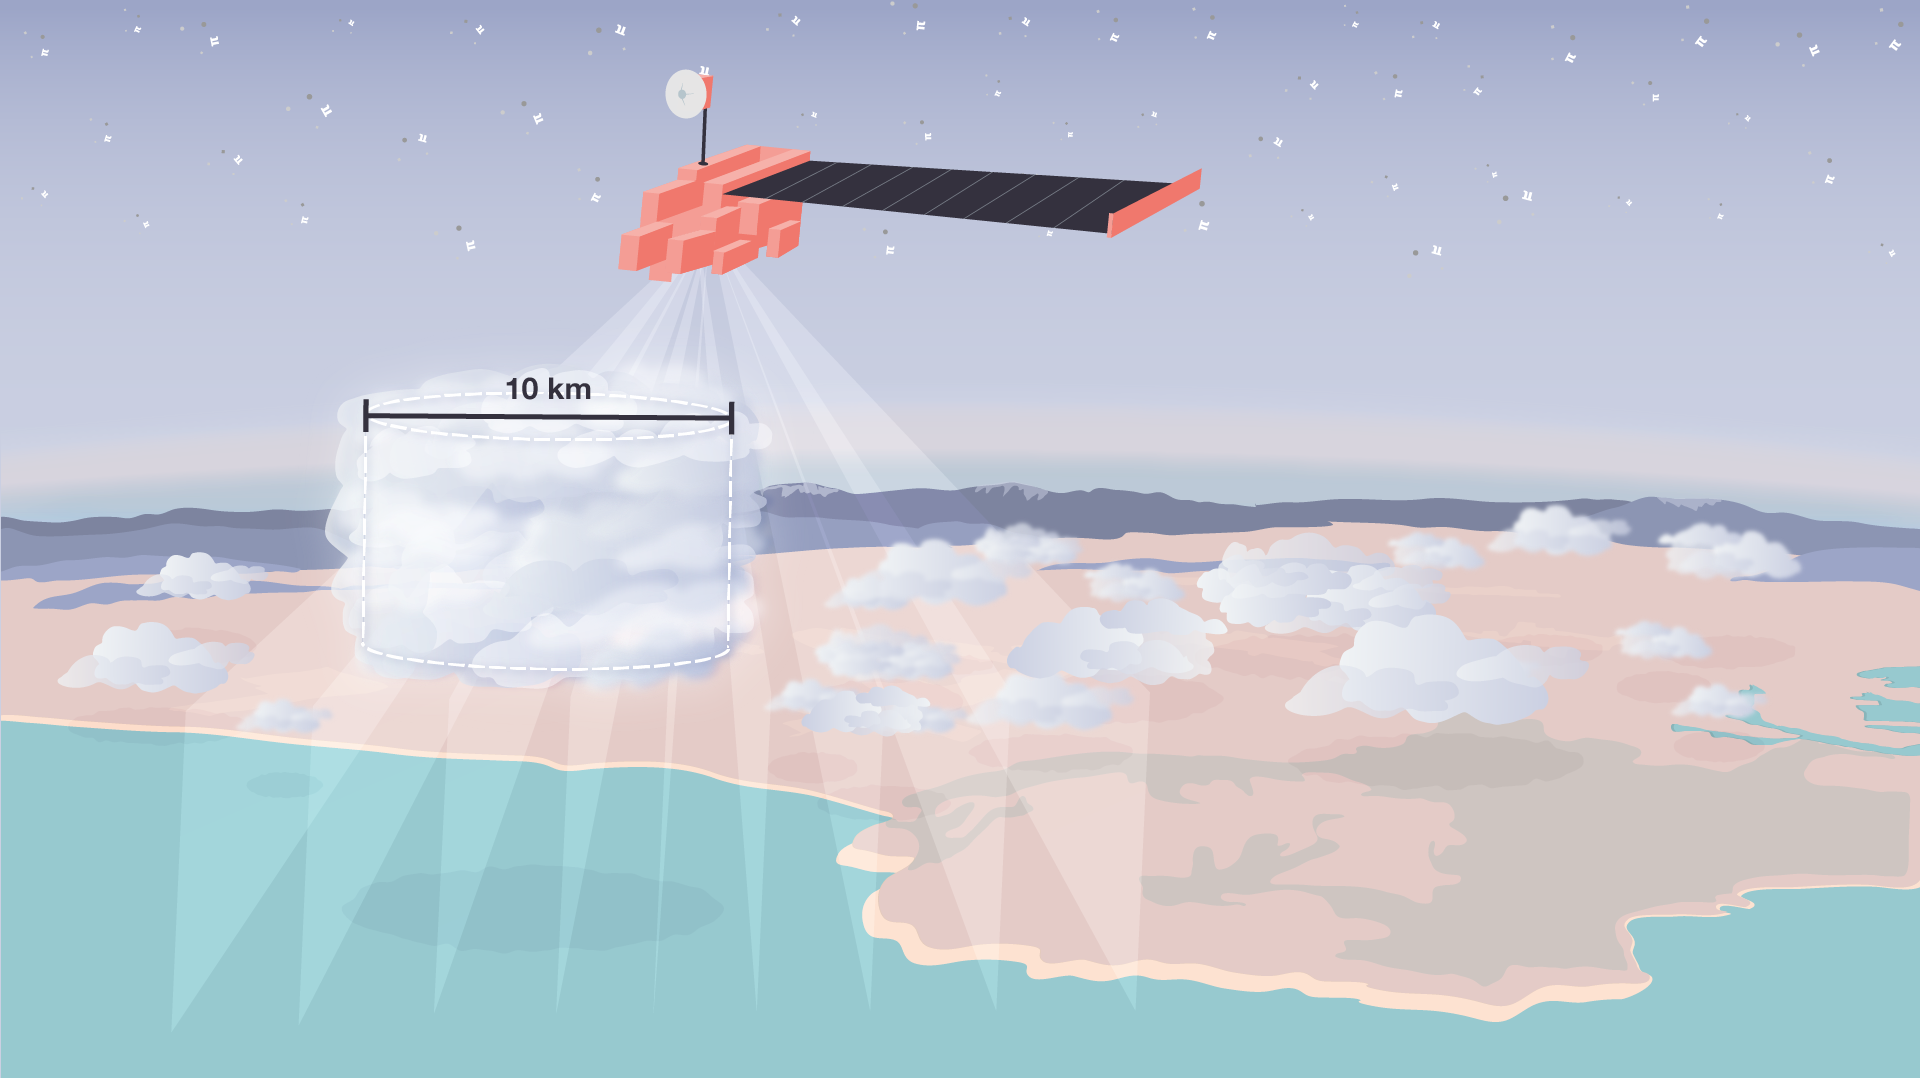 Illustration of clouds floating over the land with a large cloud in the middle showing an outline of a cylinder and a measurement of 10 km. The terra satellite is flying above with arrays from its nine cameras pointing down at the land.